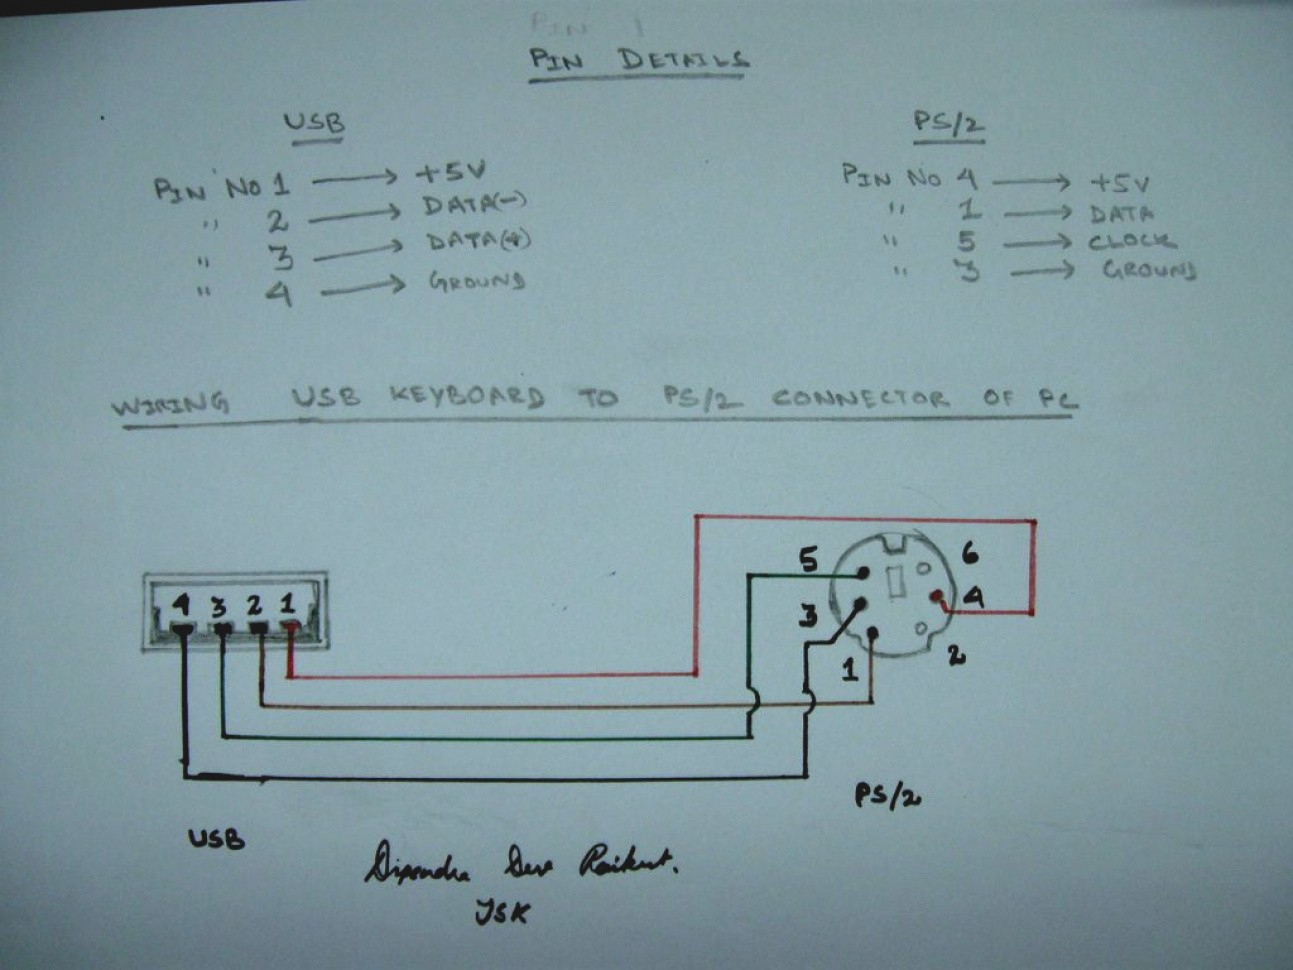 Ps2 To Usb Adapter Wiring Diagram | Wiring Diagram - Ps2 Controller To Usb Wiring Diagram